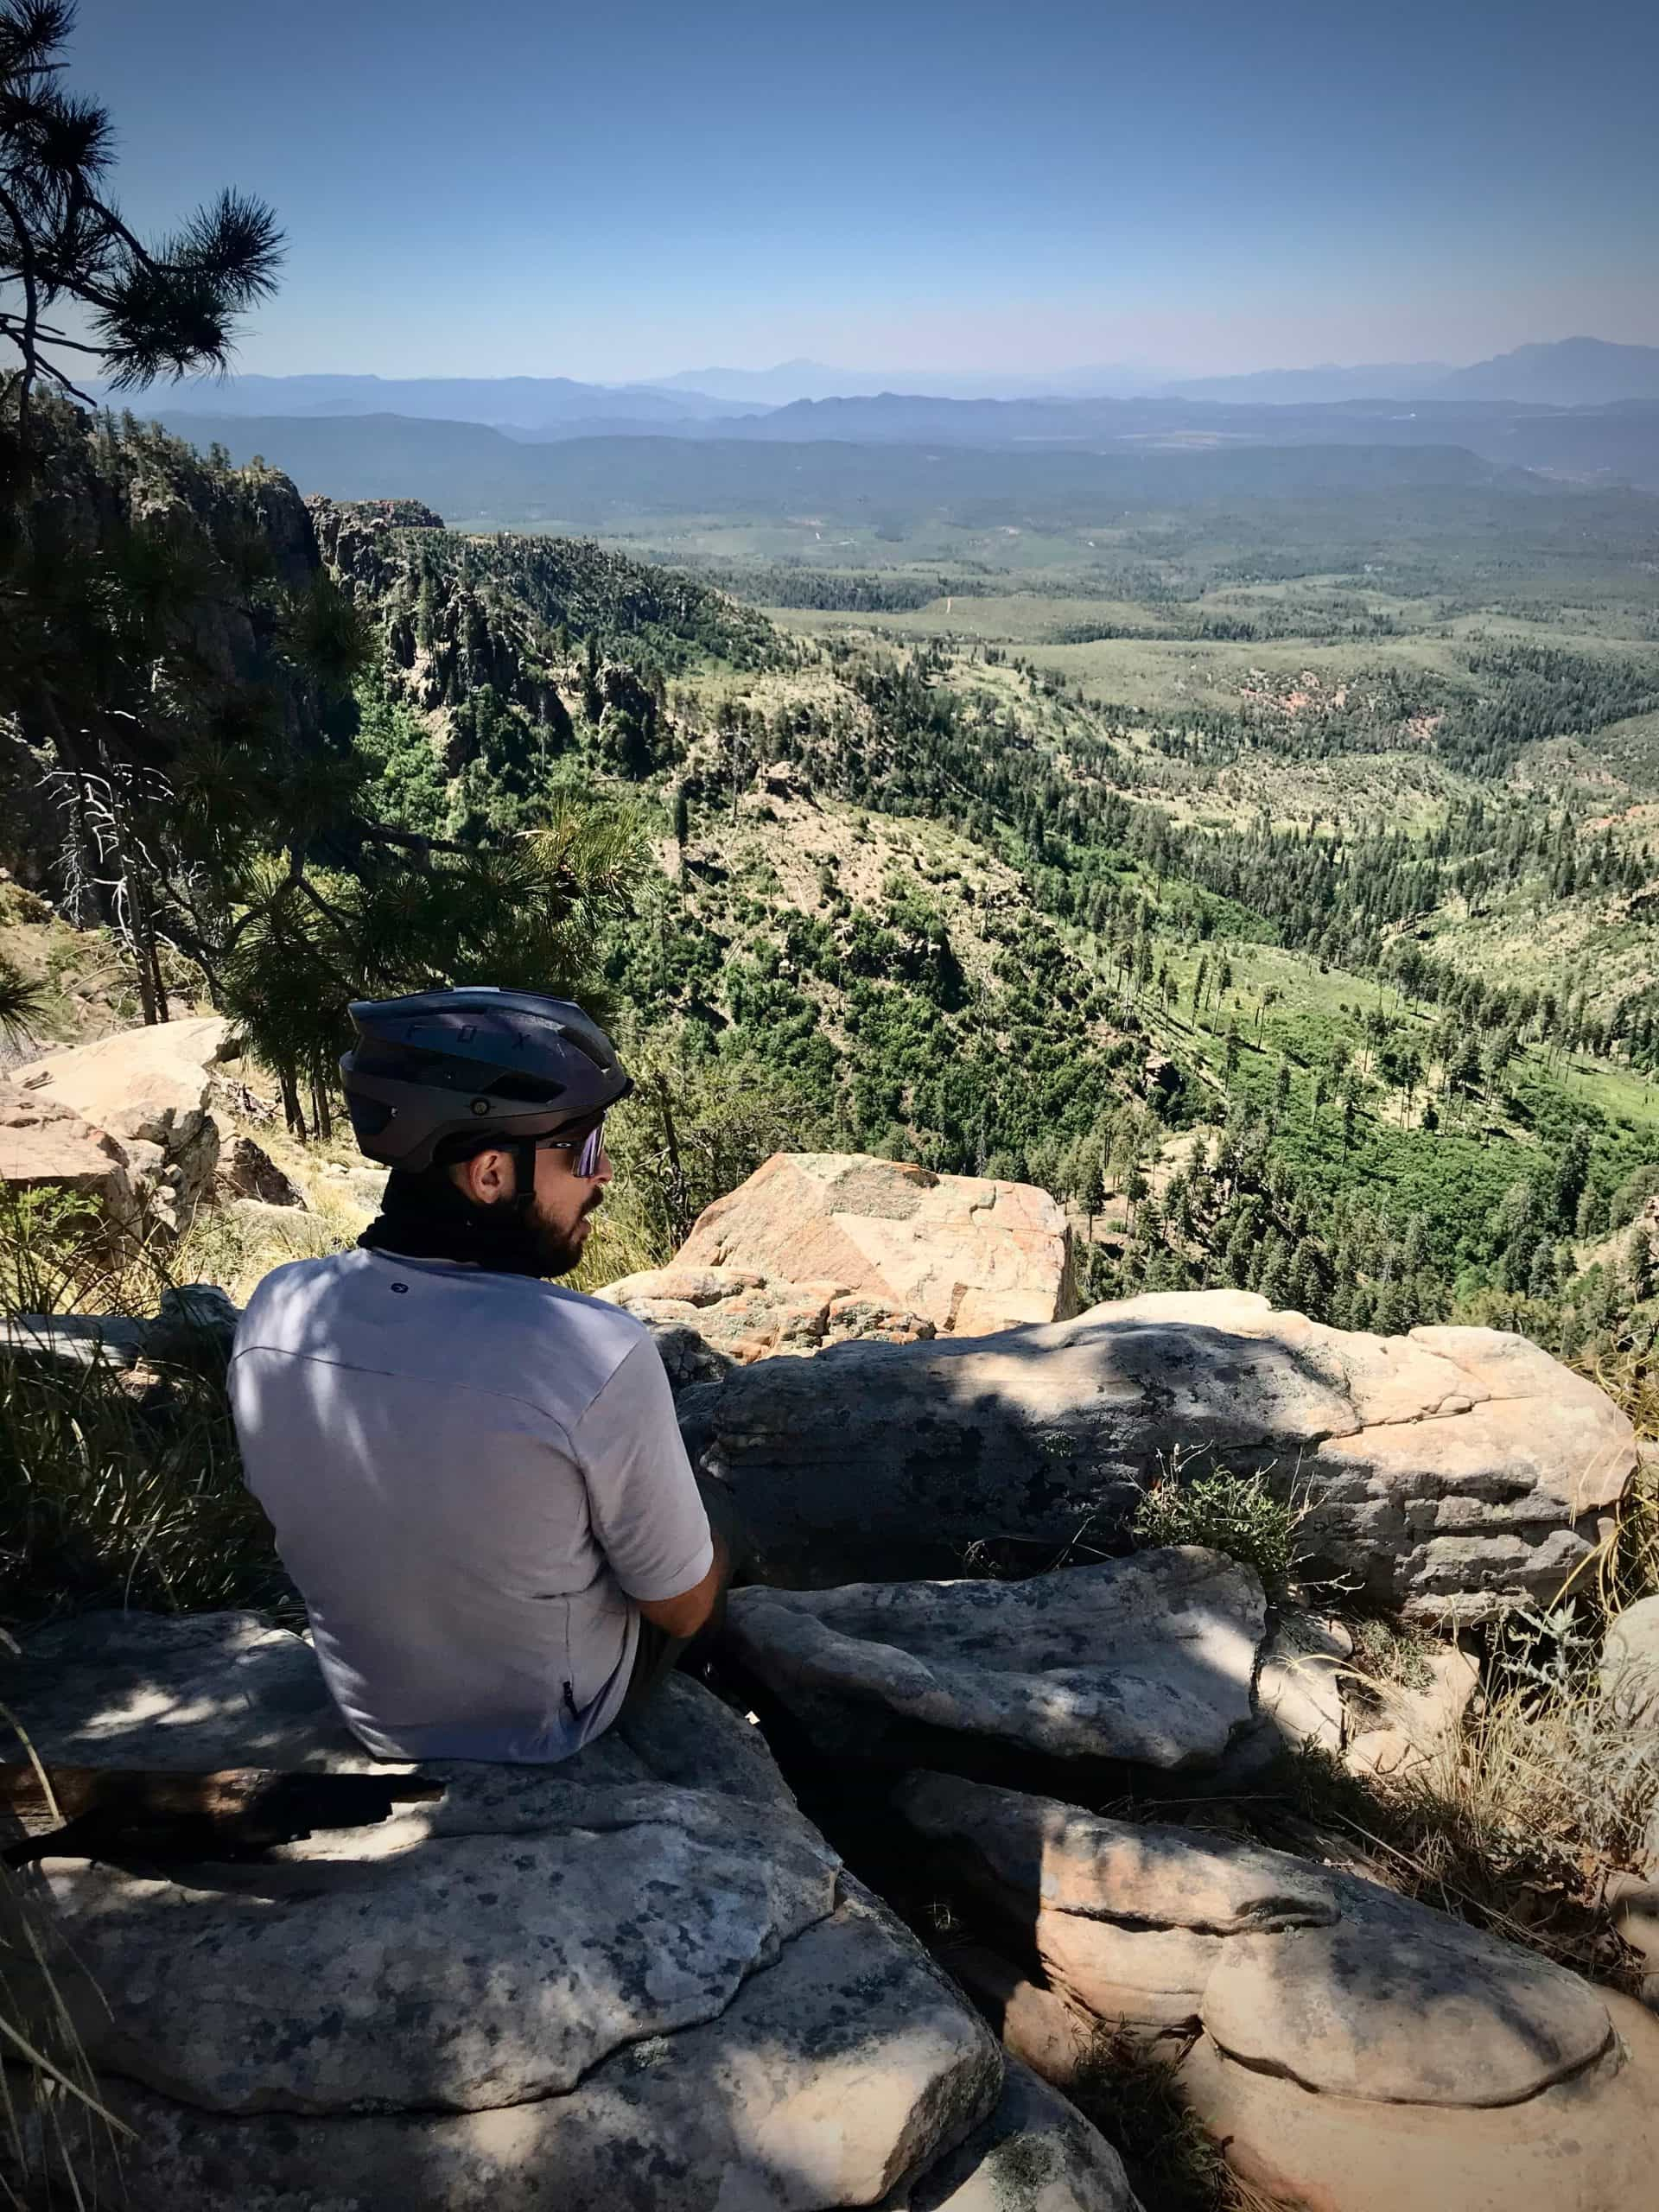 Bicycle rider looking east from the Mogollon Rim in central Arizona.